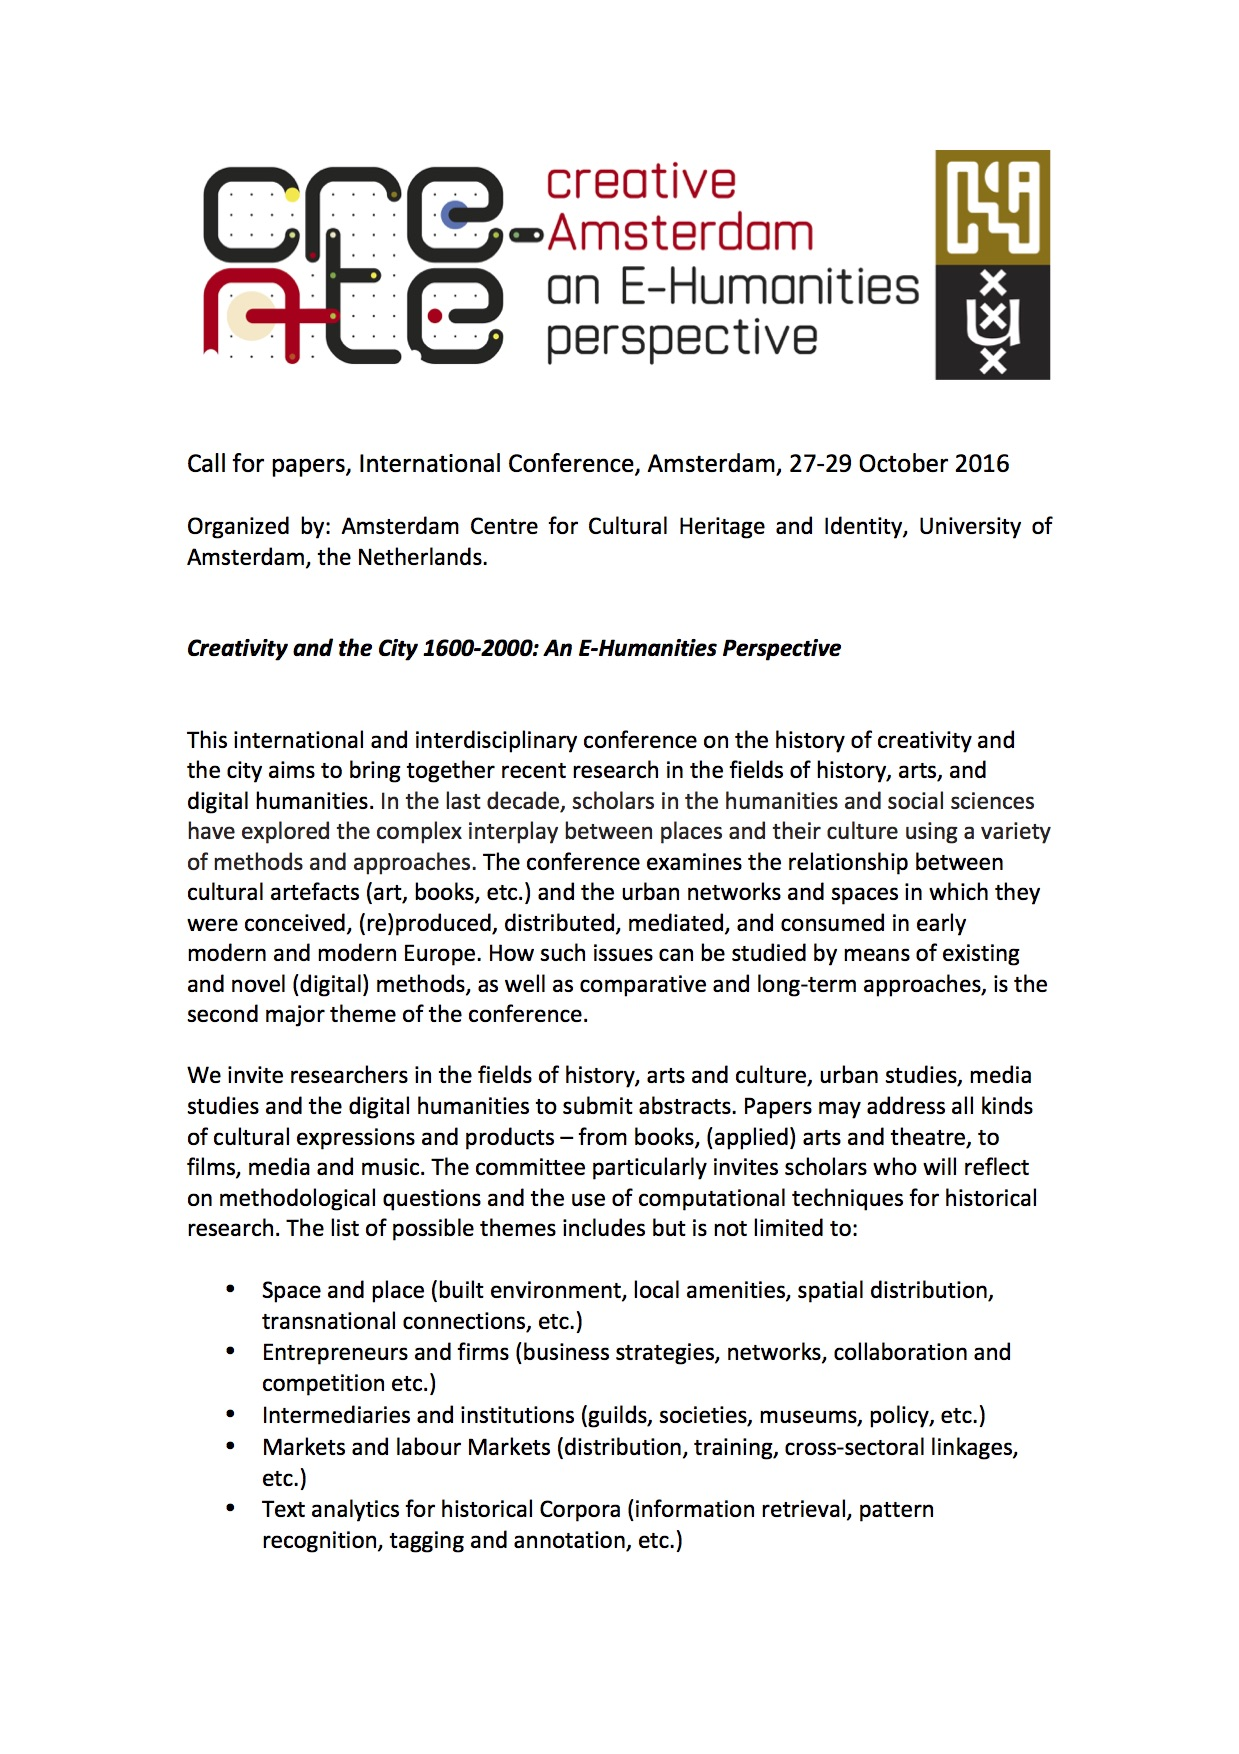 2016 Conference: Creativity and the City 1600-2000  An E-Humanities